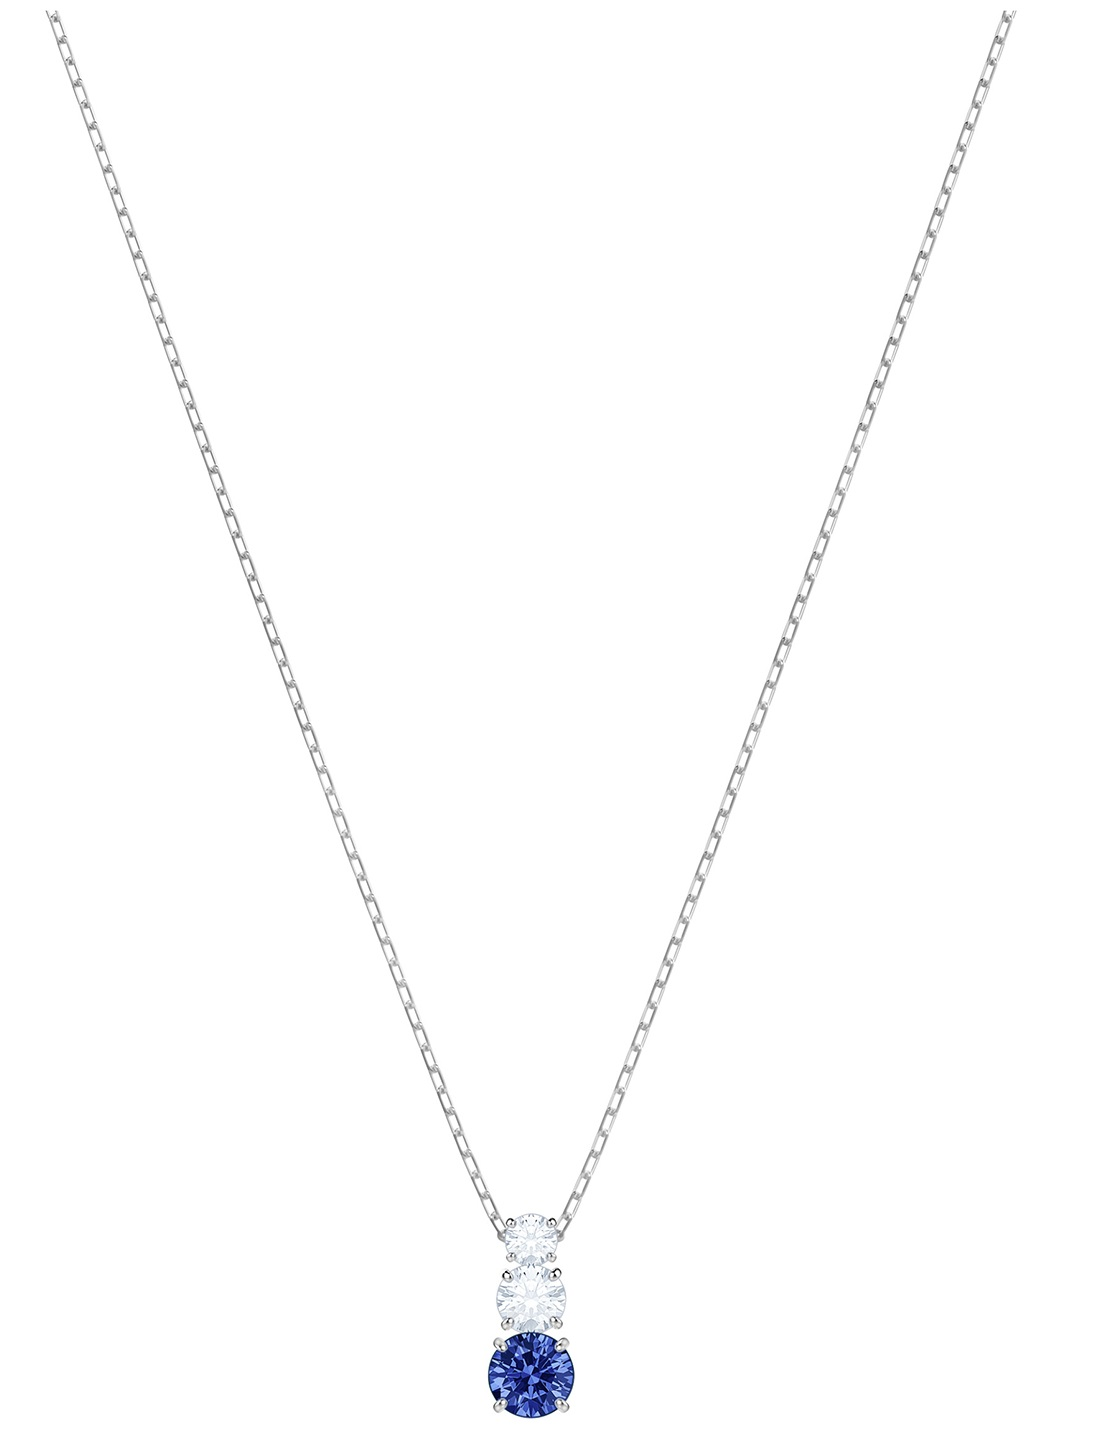 6b9285c63 Swarovski Attract Trilogy Necklace With Pendant - 5416156